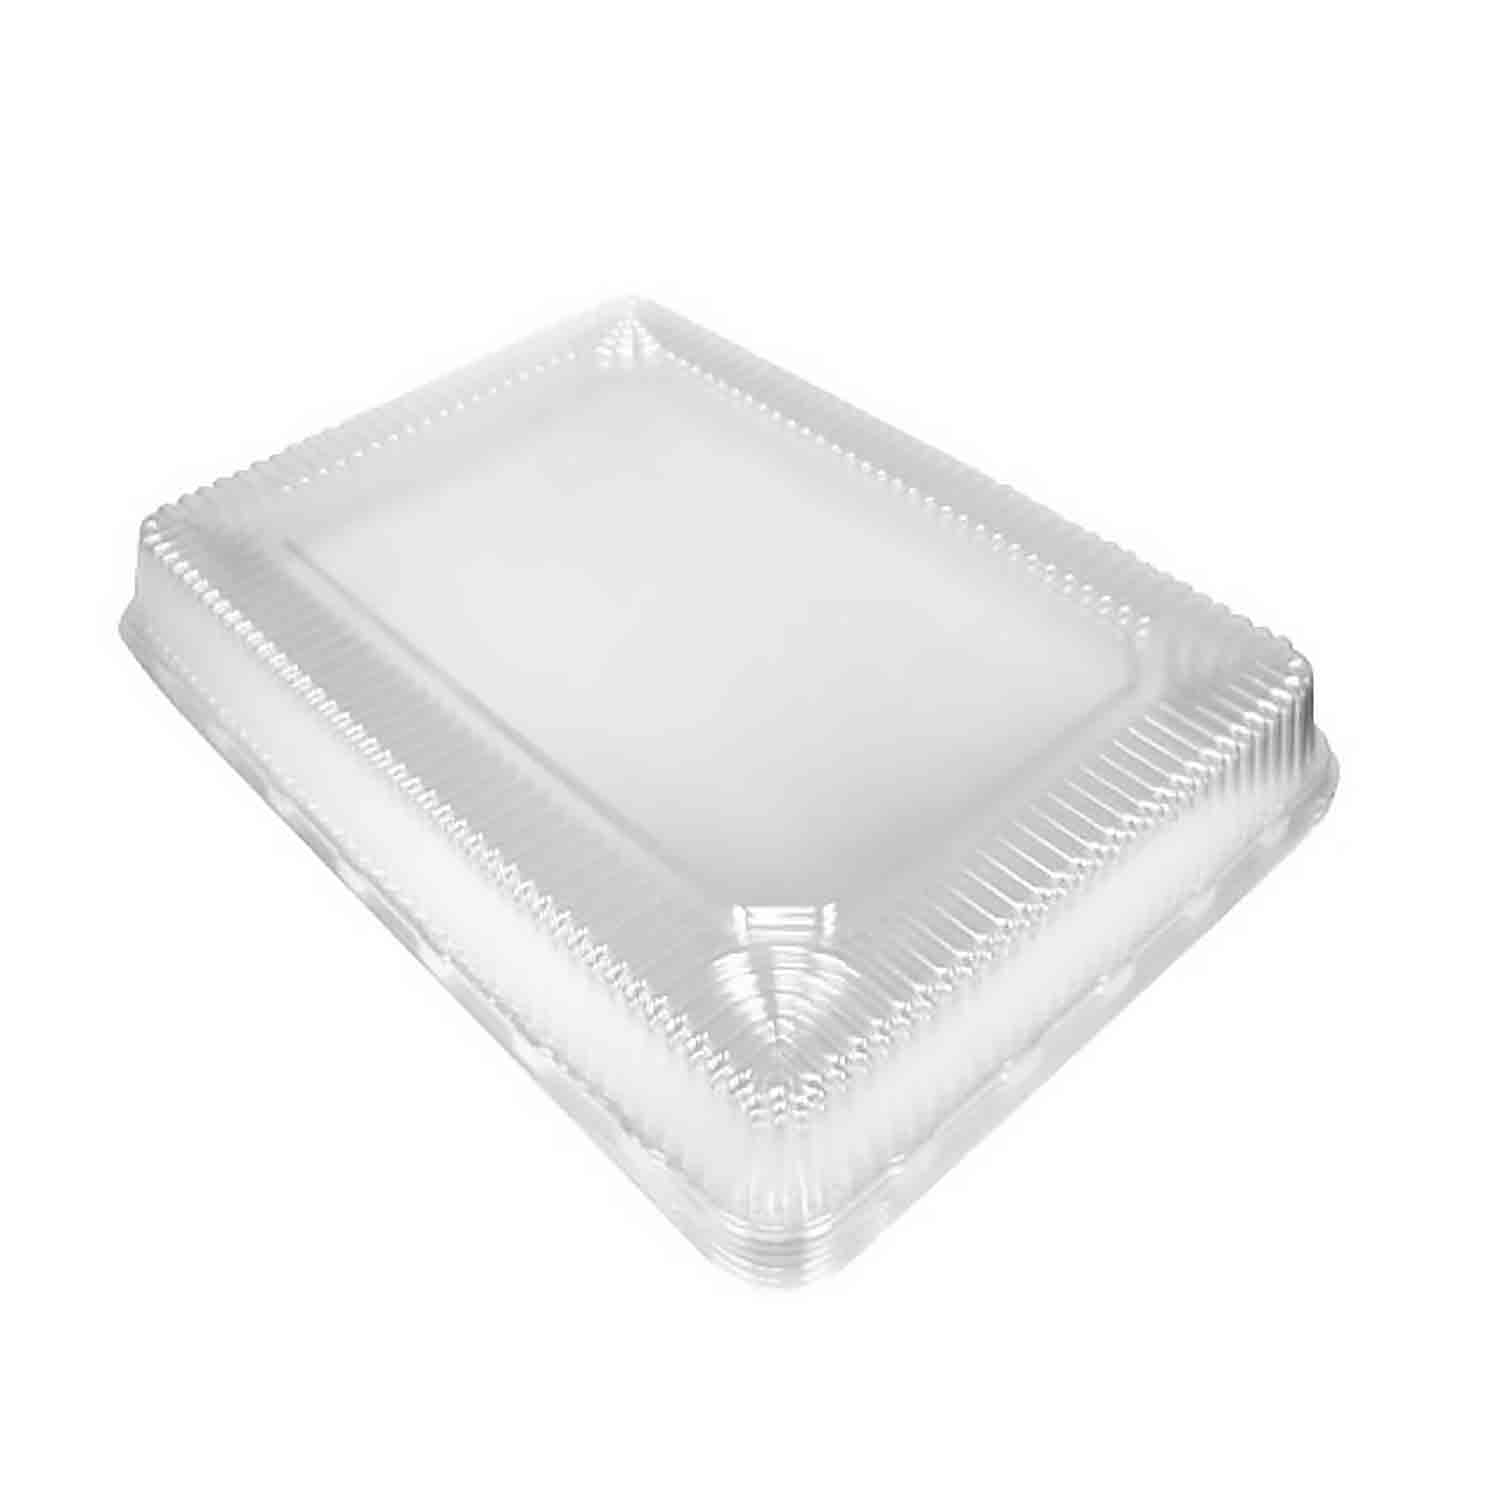 Quarter Sheet Dome Lid